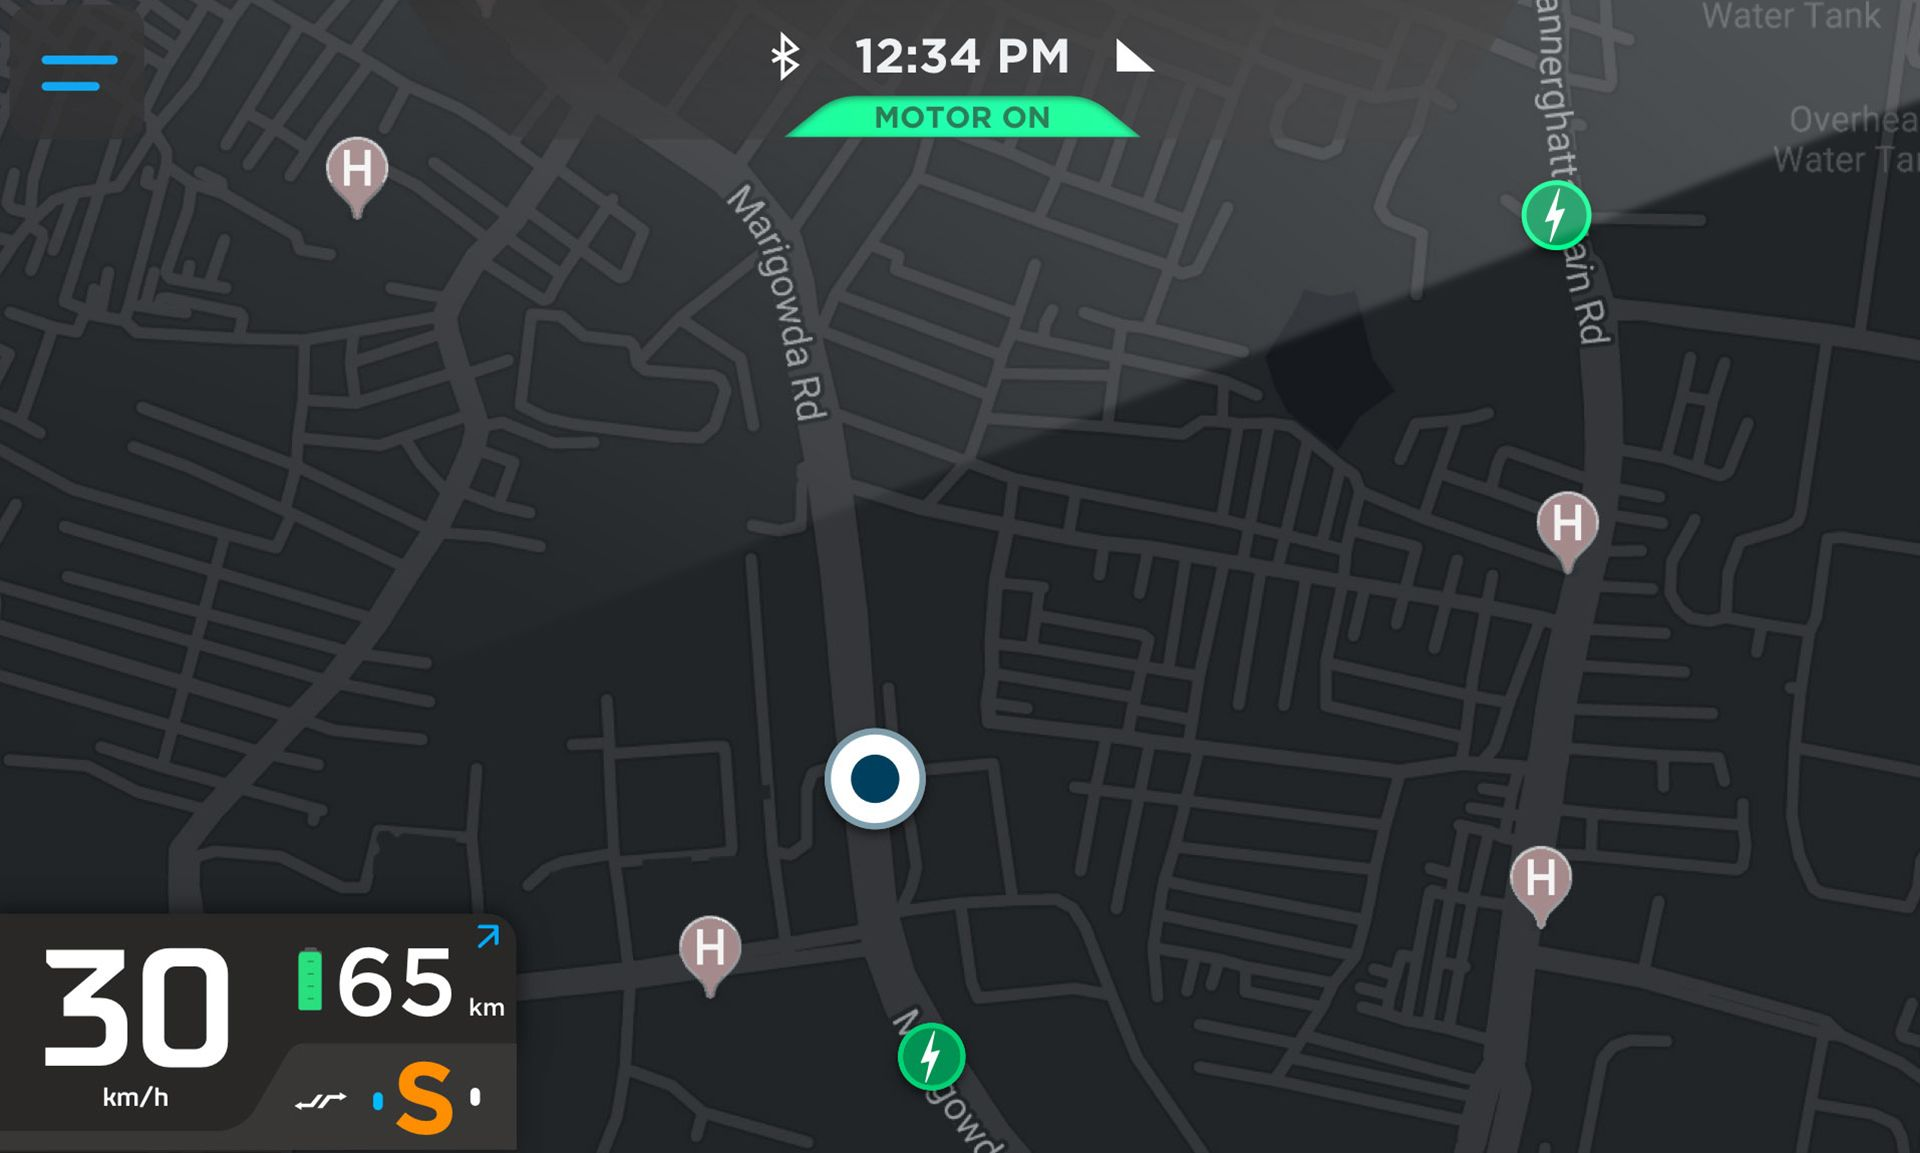 Ather 450 and ather 450x google navigation map on smart dashboard